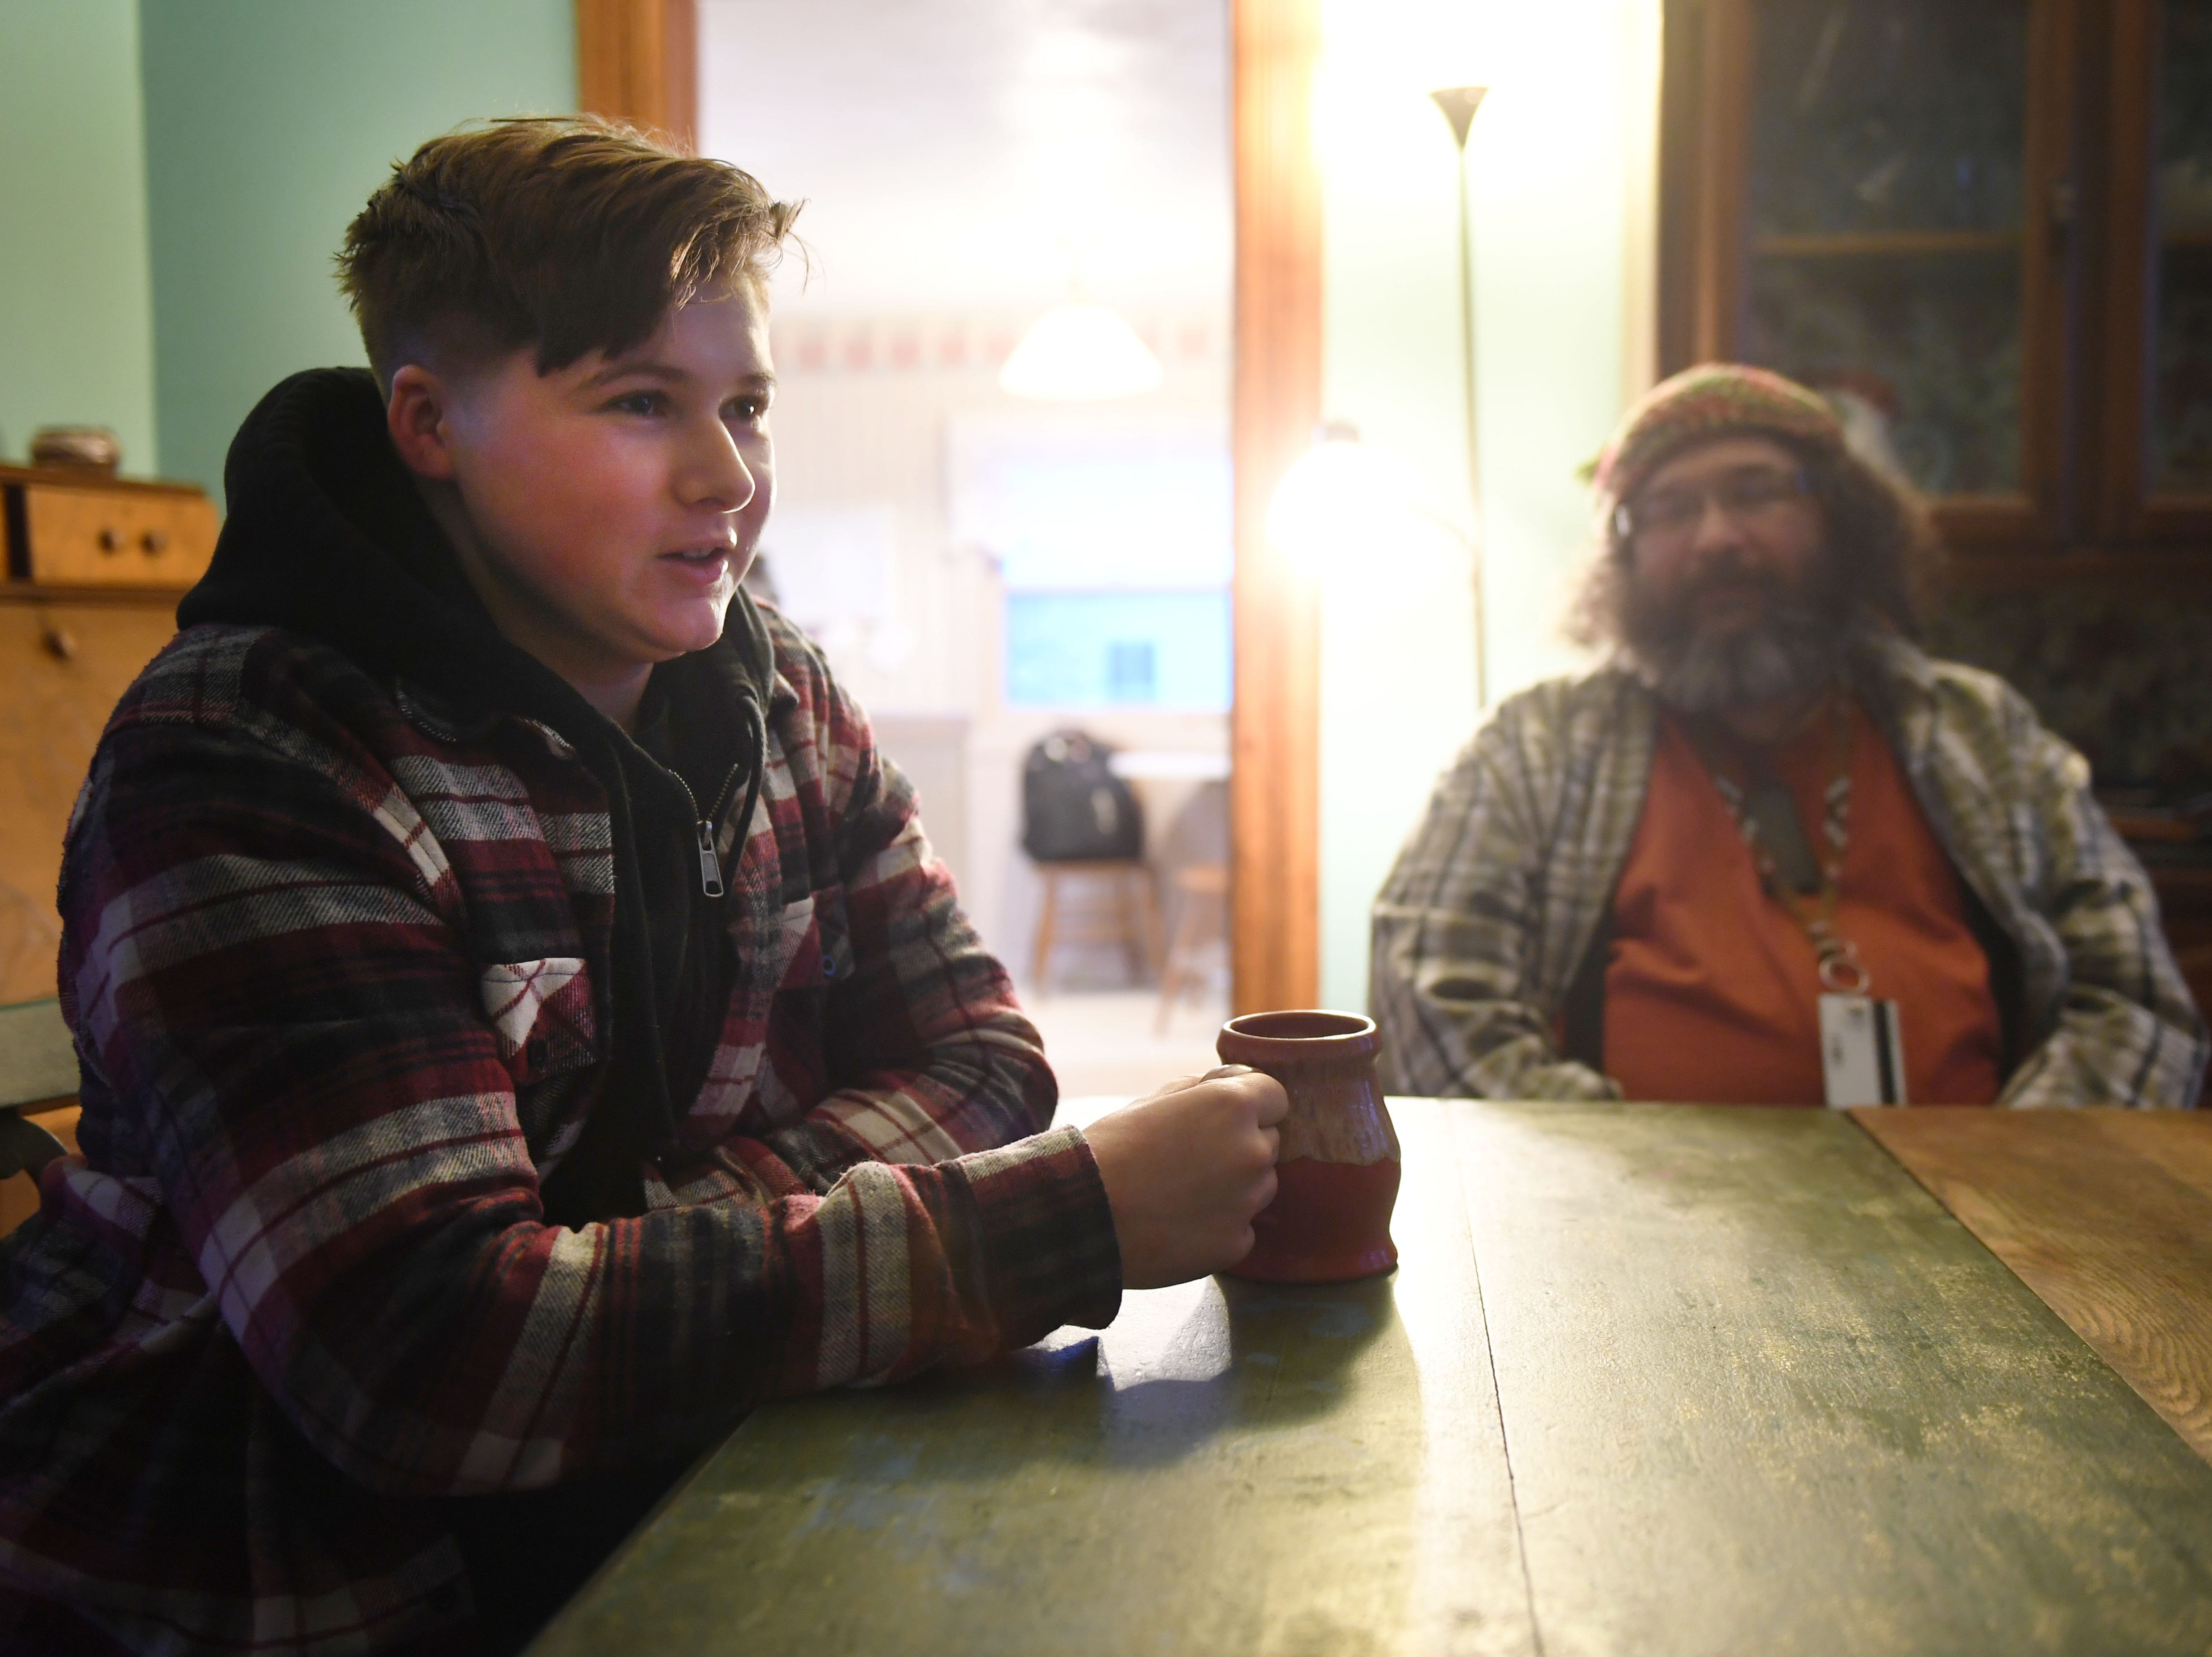 Dylan Daniels and his father, Mark, talk on Monday, Feb. 25, in Vermillion about Dylan's experience transitioning.